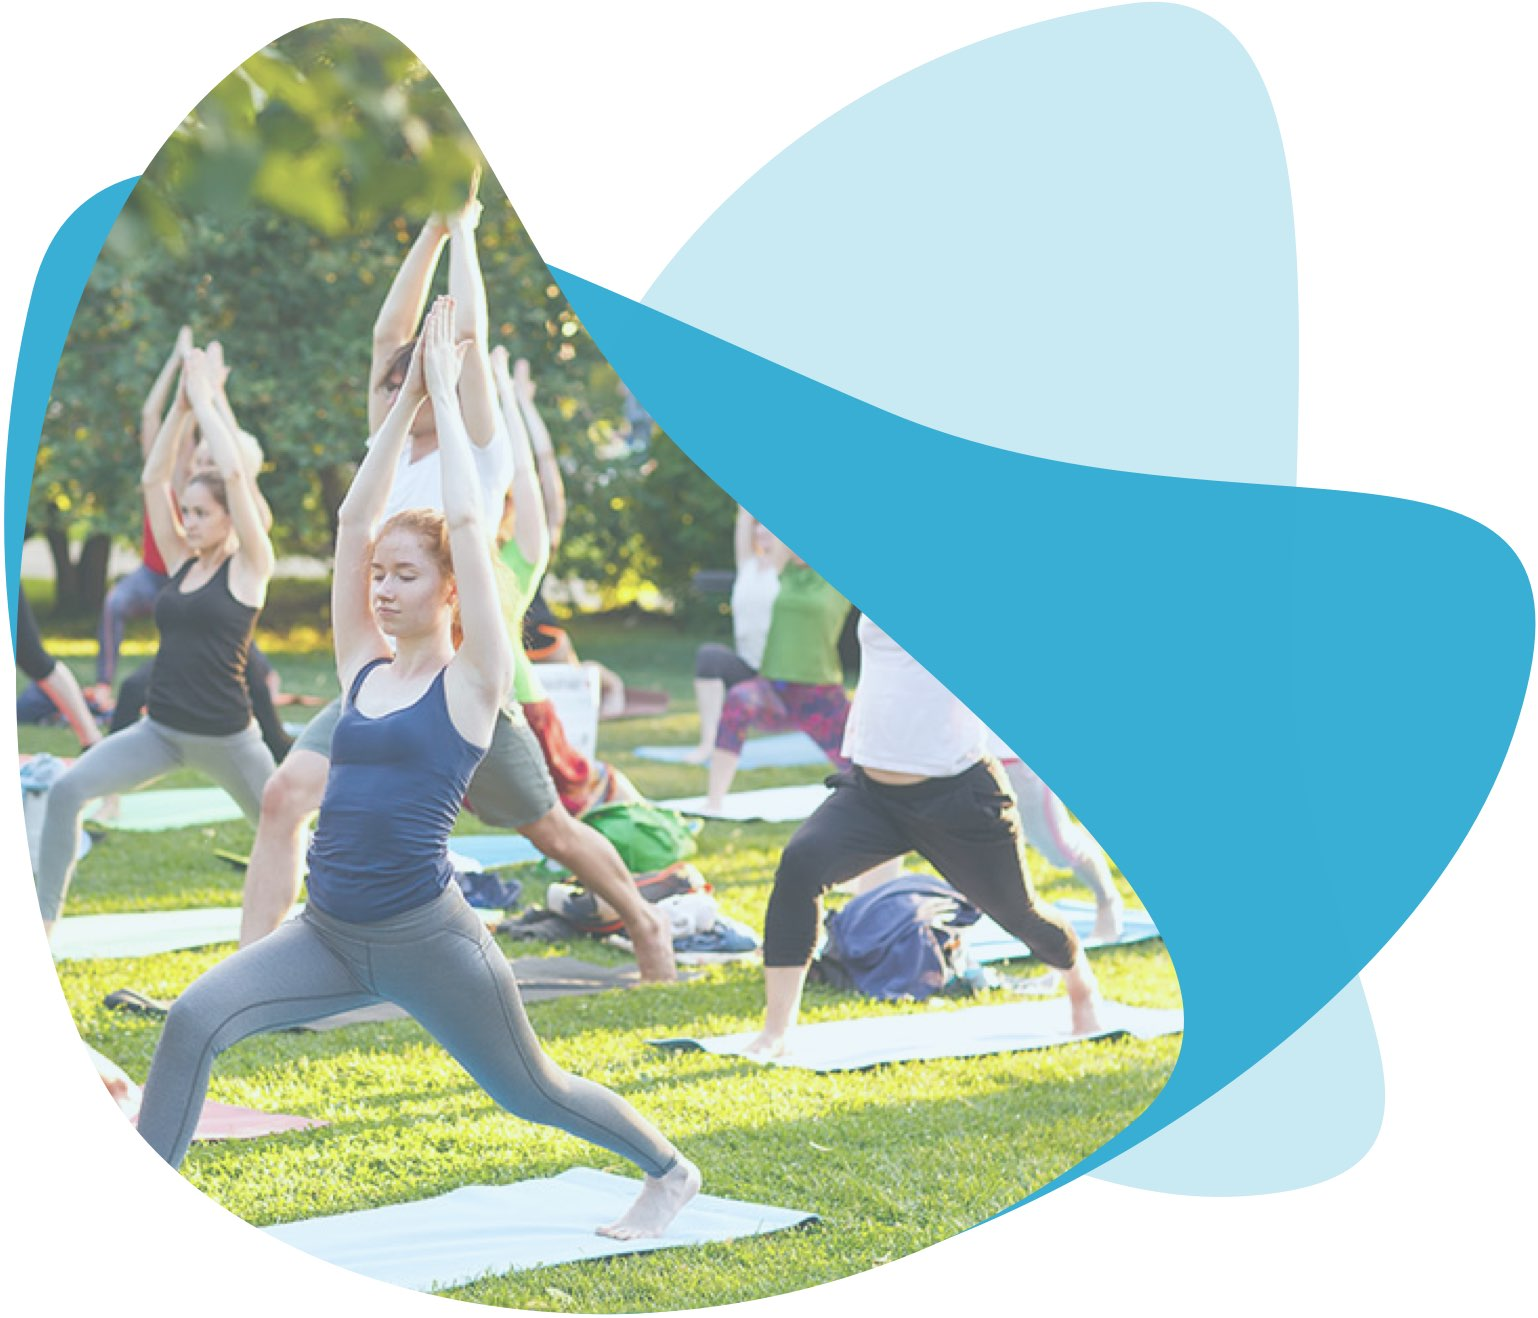 Meet new people and have fun doing yoga outdoor activity